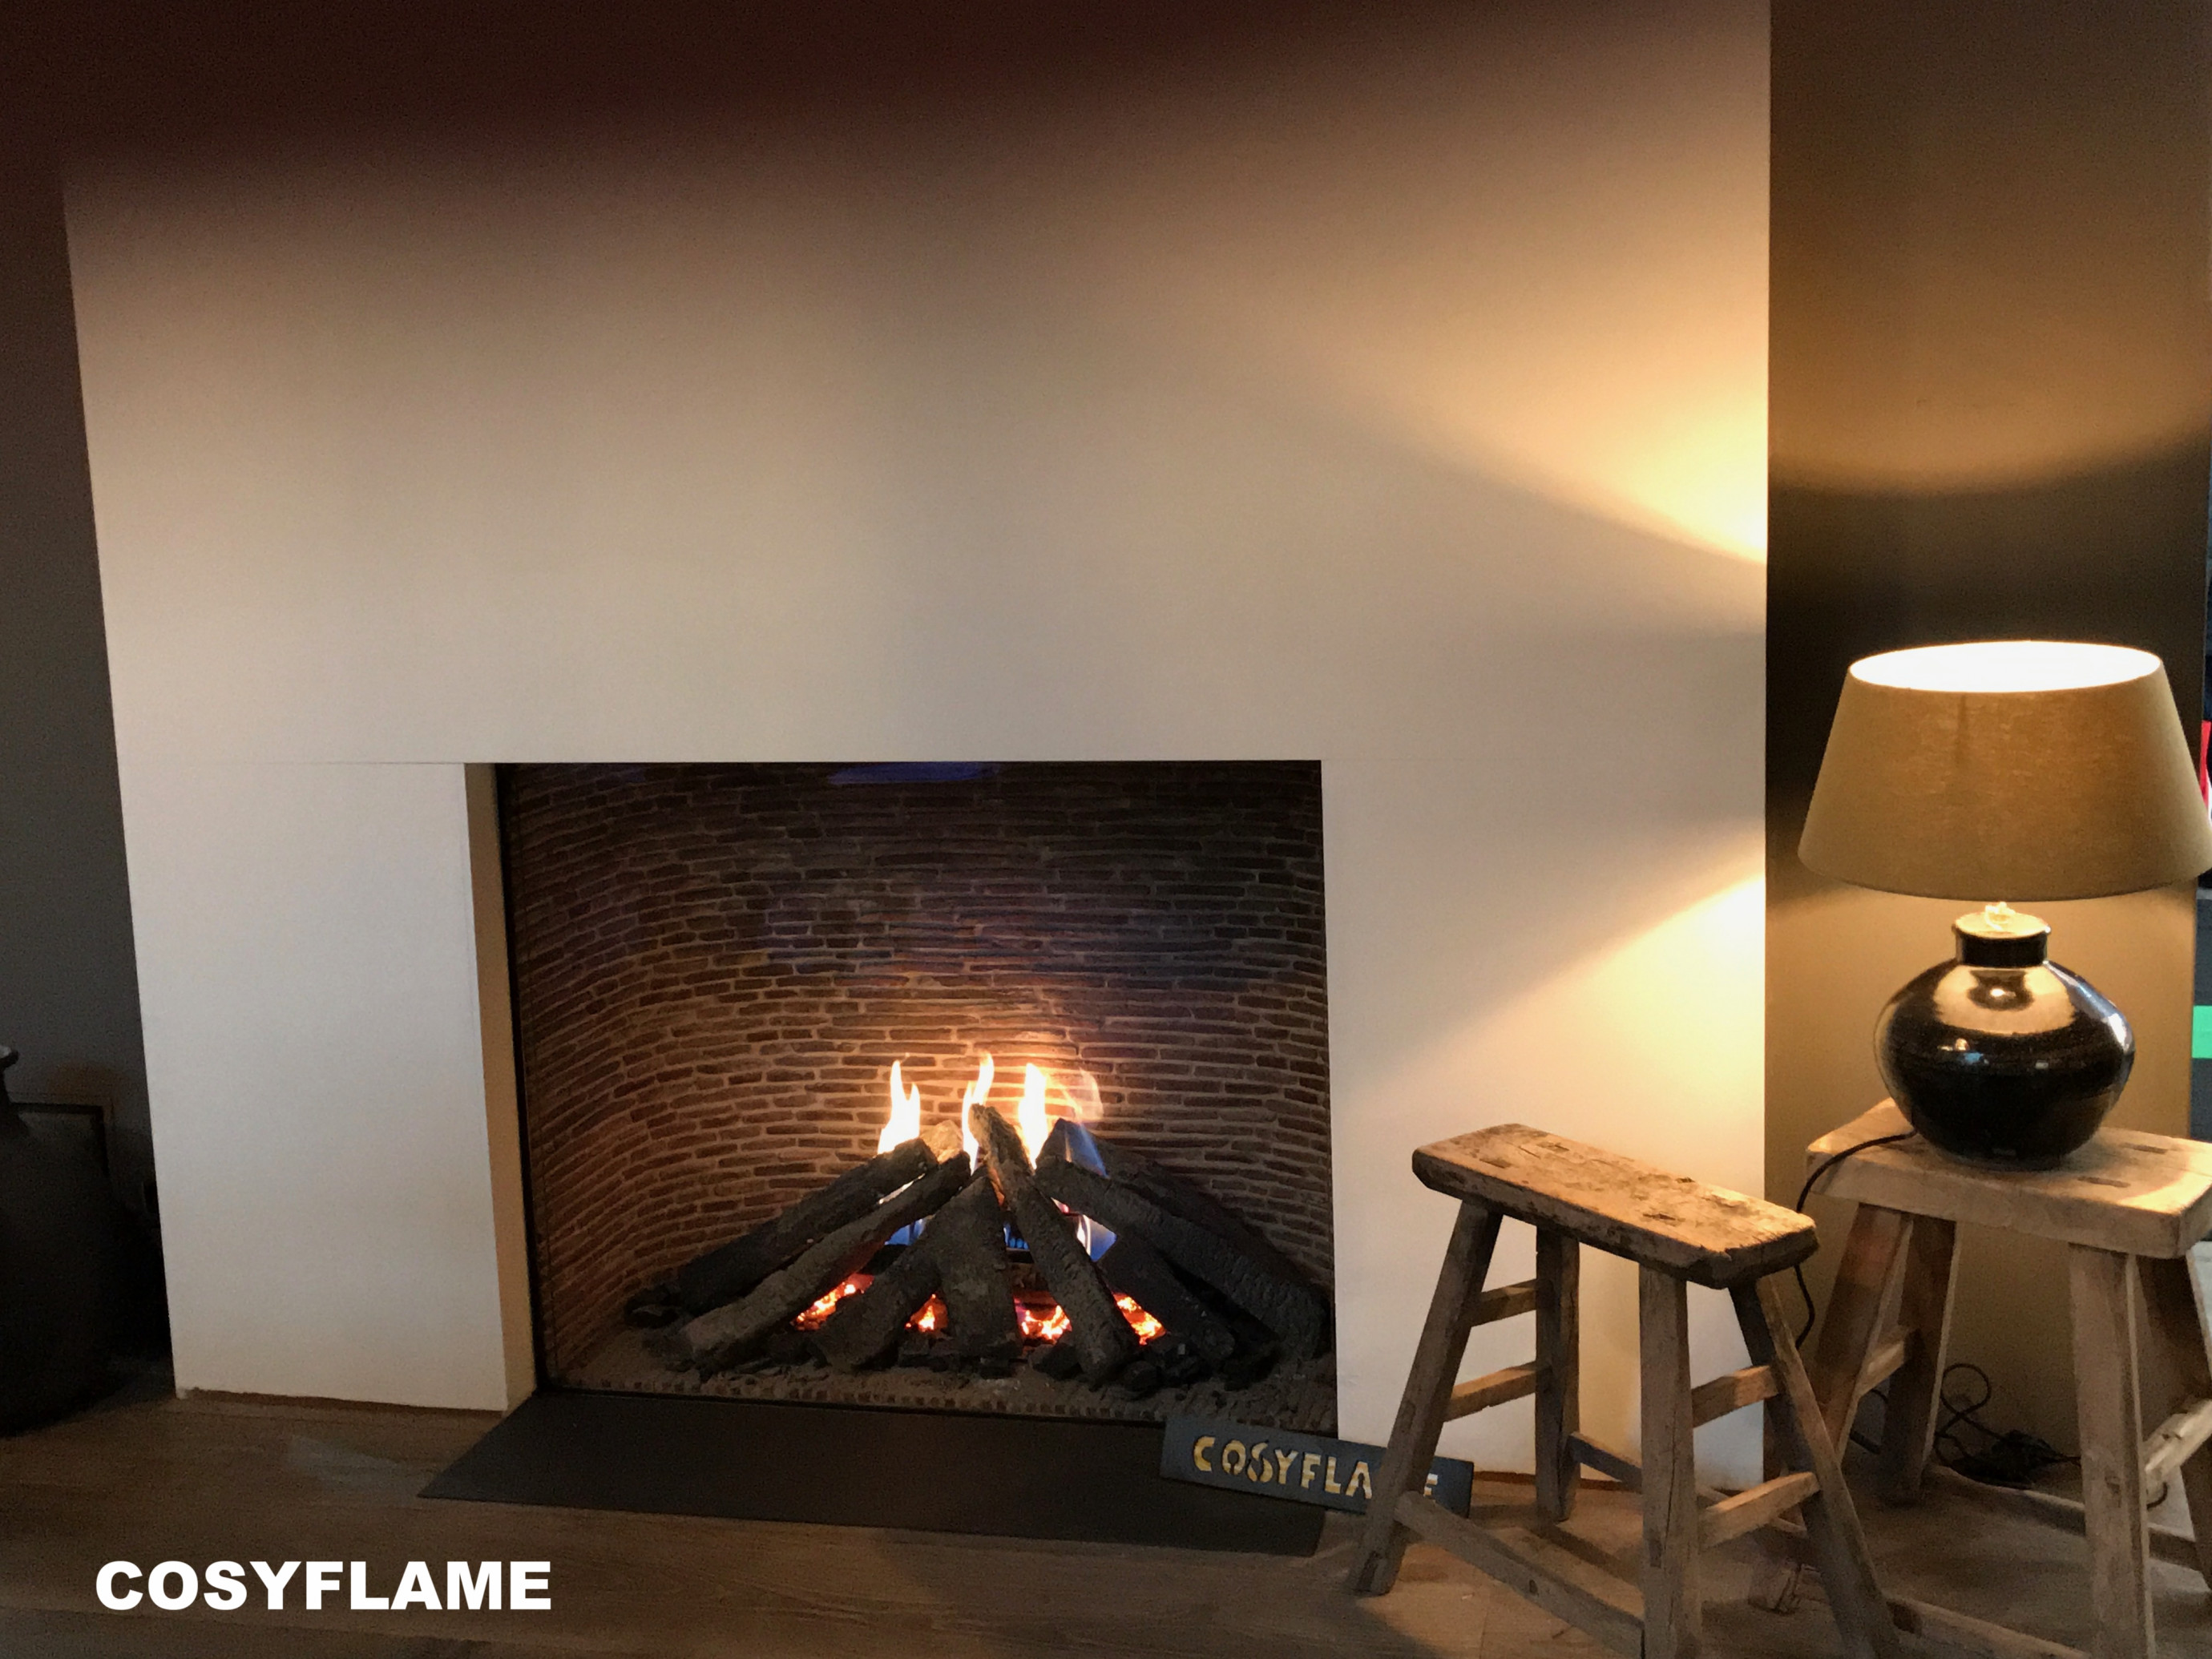 Cosyflame-Rode-pannenstrips-file2-5